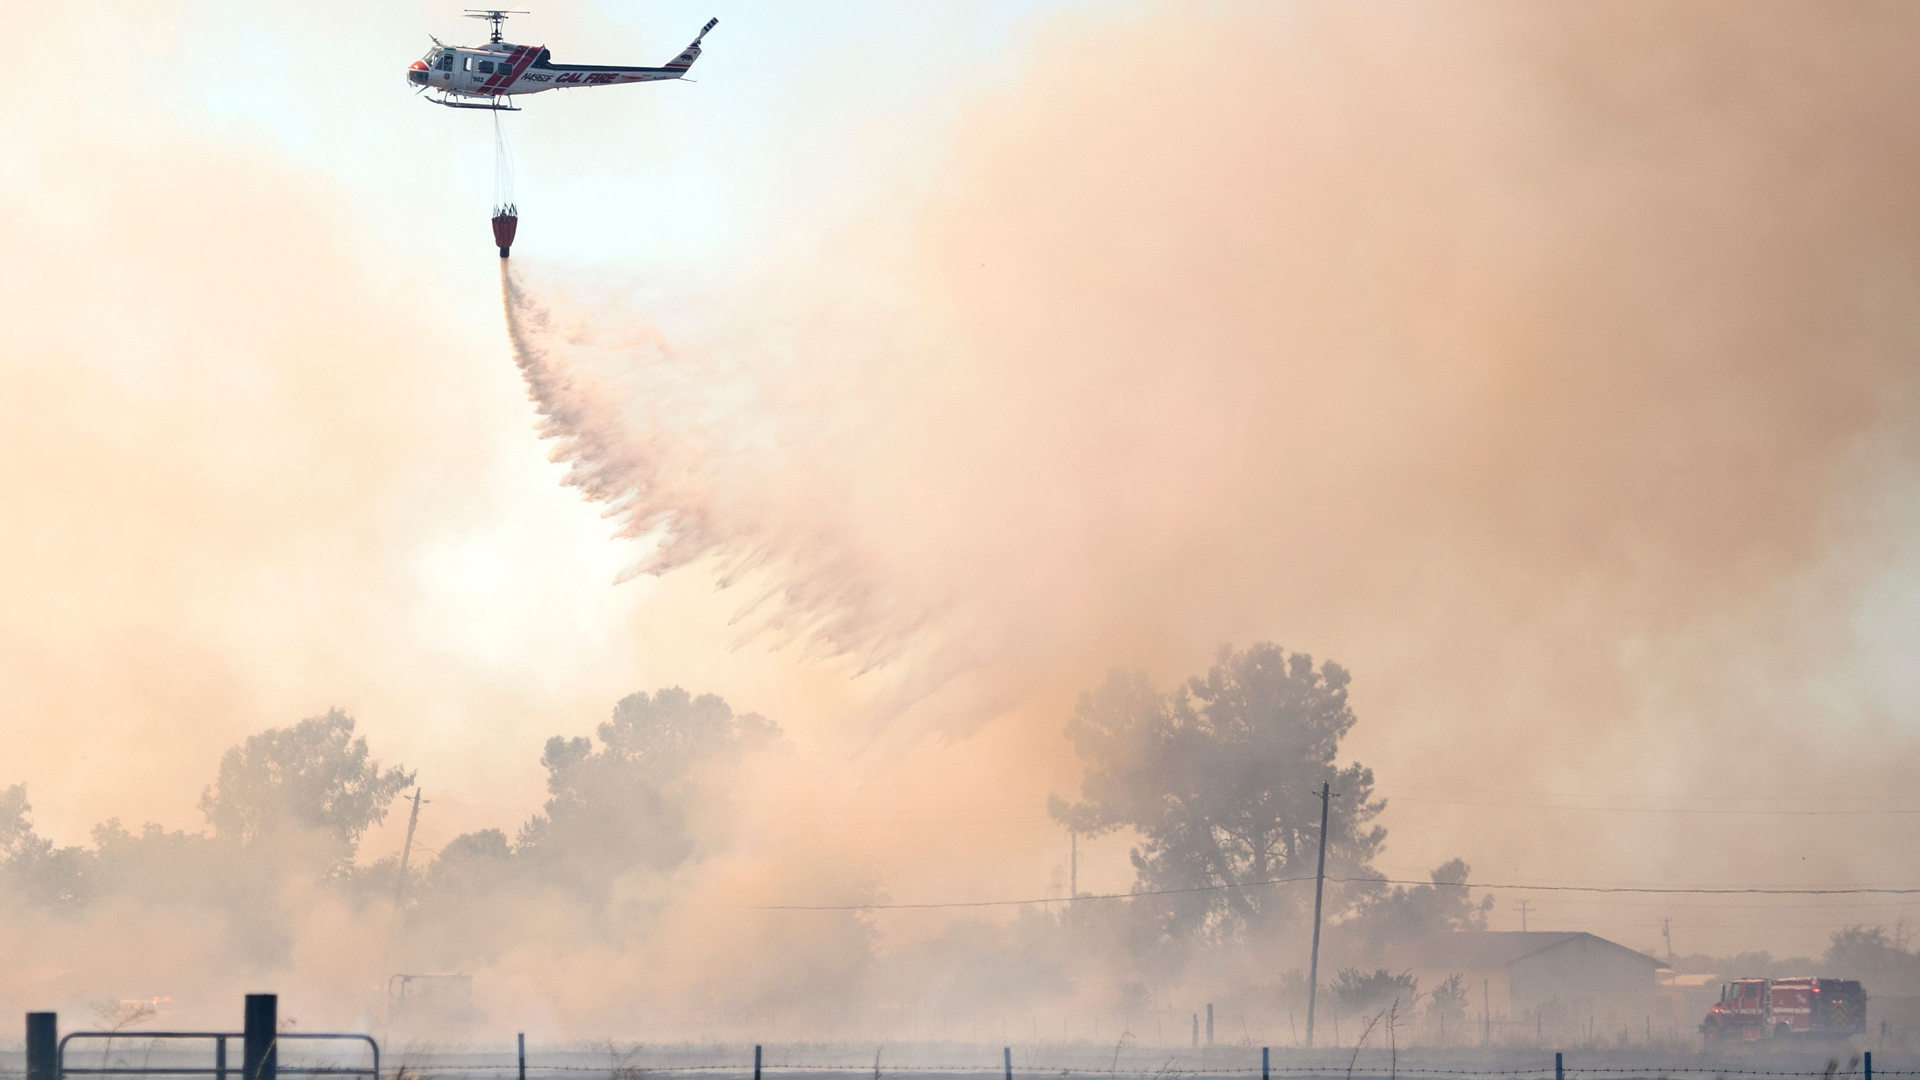 A helicopter drops water on a fire that broke out in Butte County, California on July 10, 2017. (Credit: Josh Edelson/AFP/Getty Images)